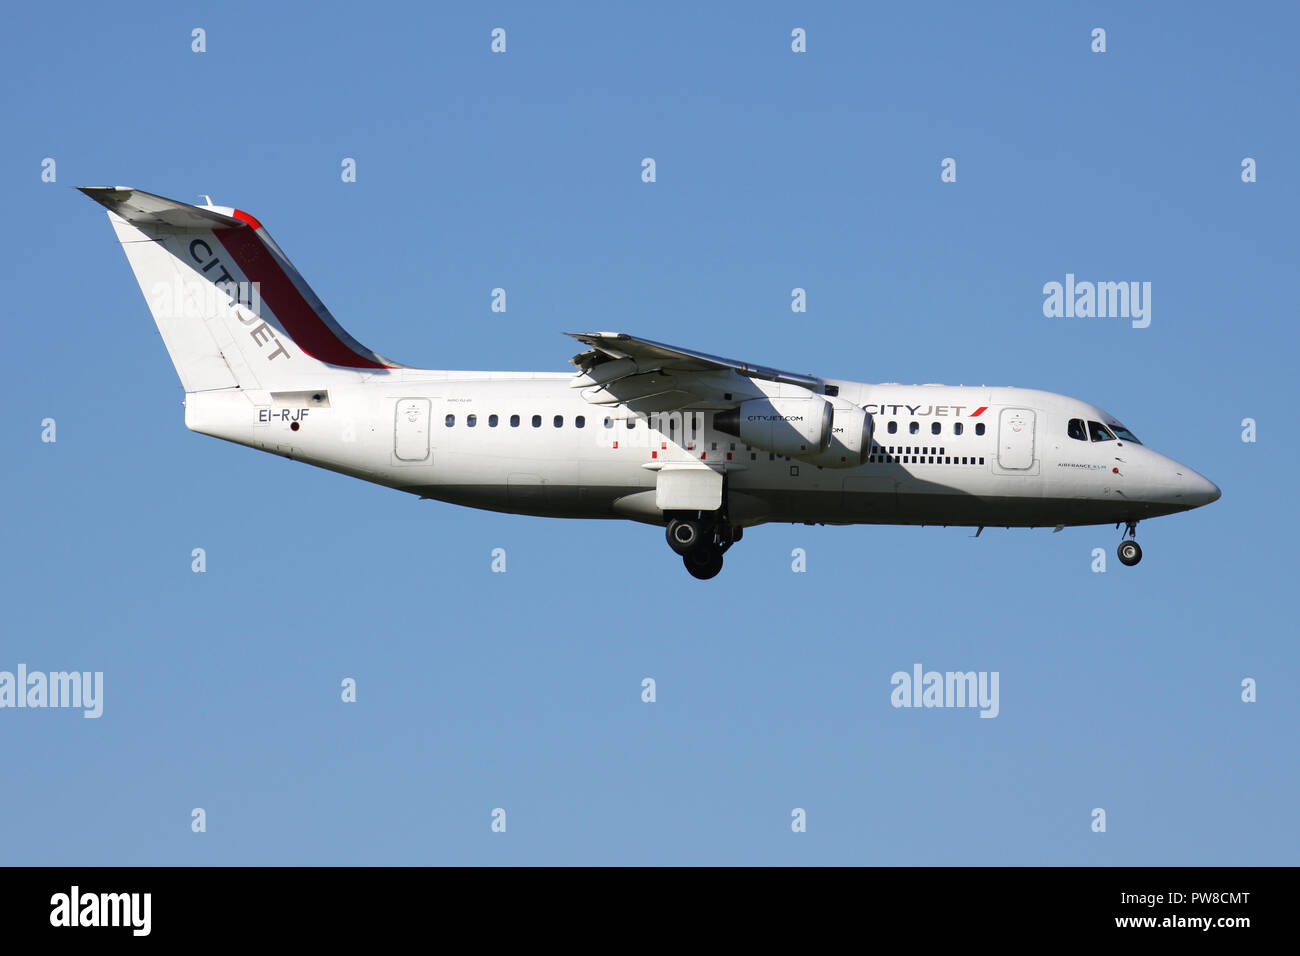 CityJet Avro RJ85 (old livery) with registration EI-RJF on short final for runway 14 of Zurich Airport. - Stock Image